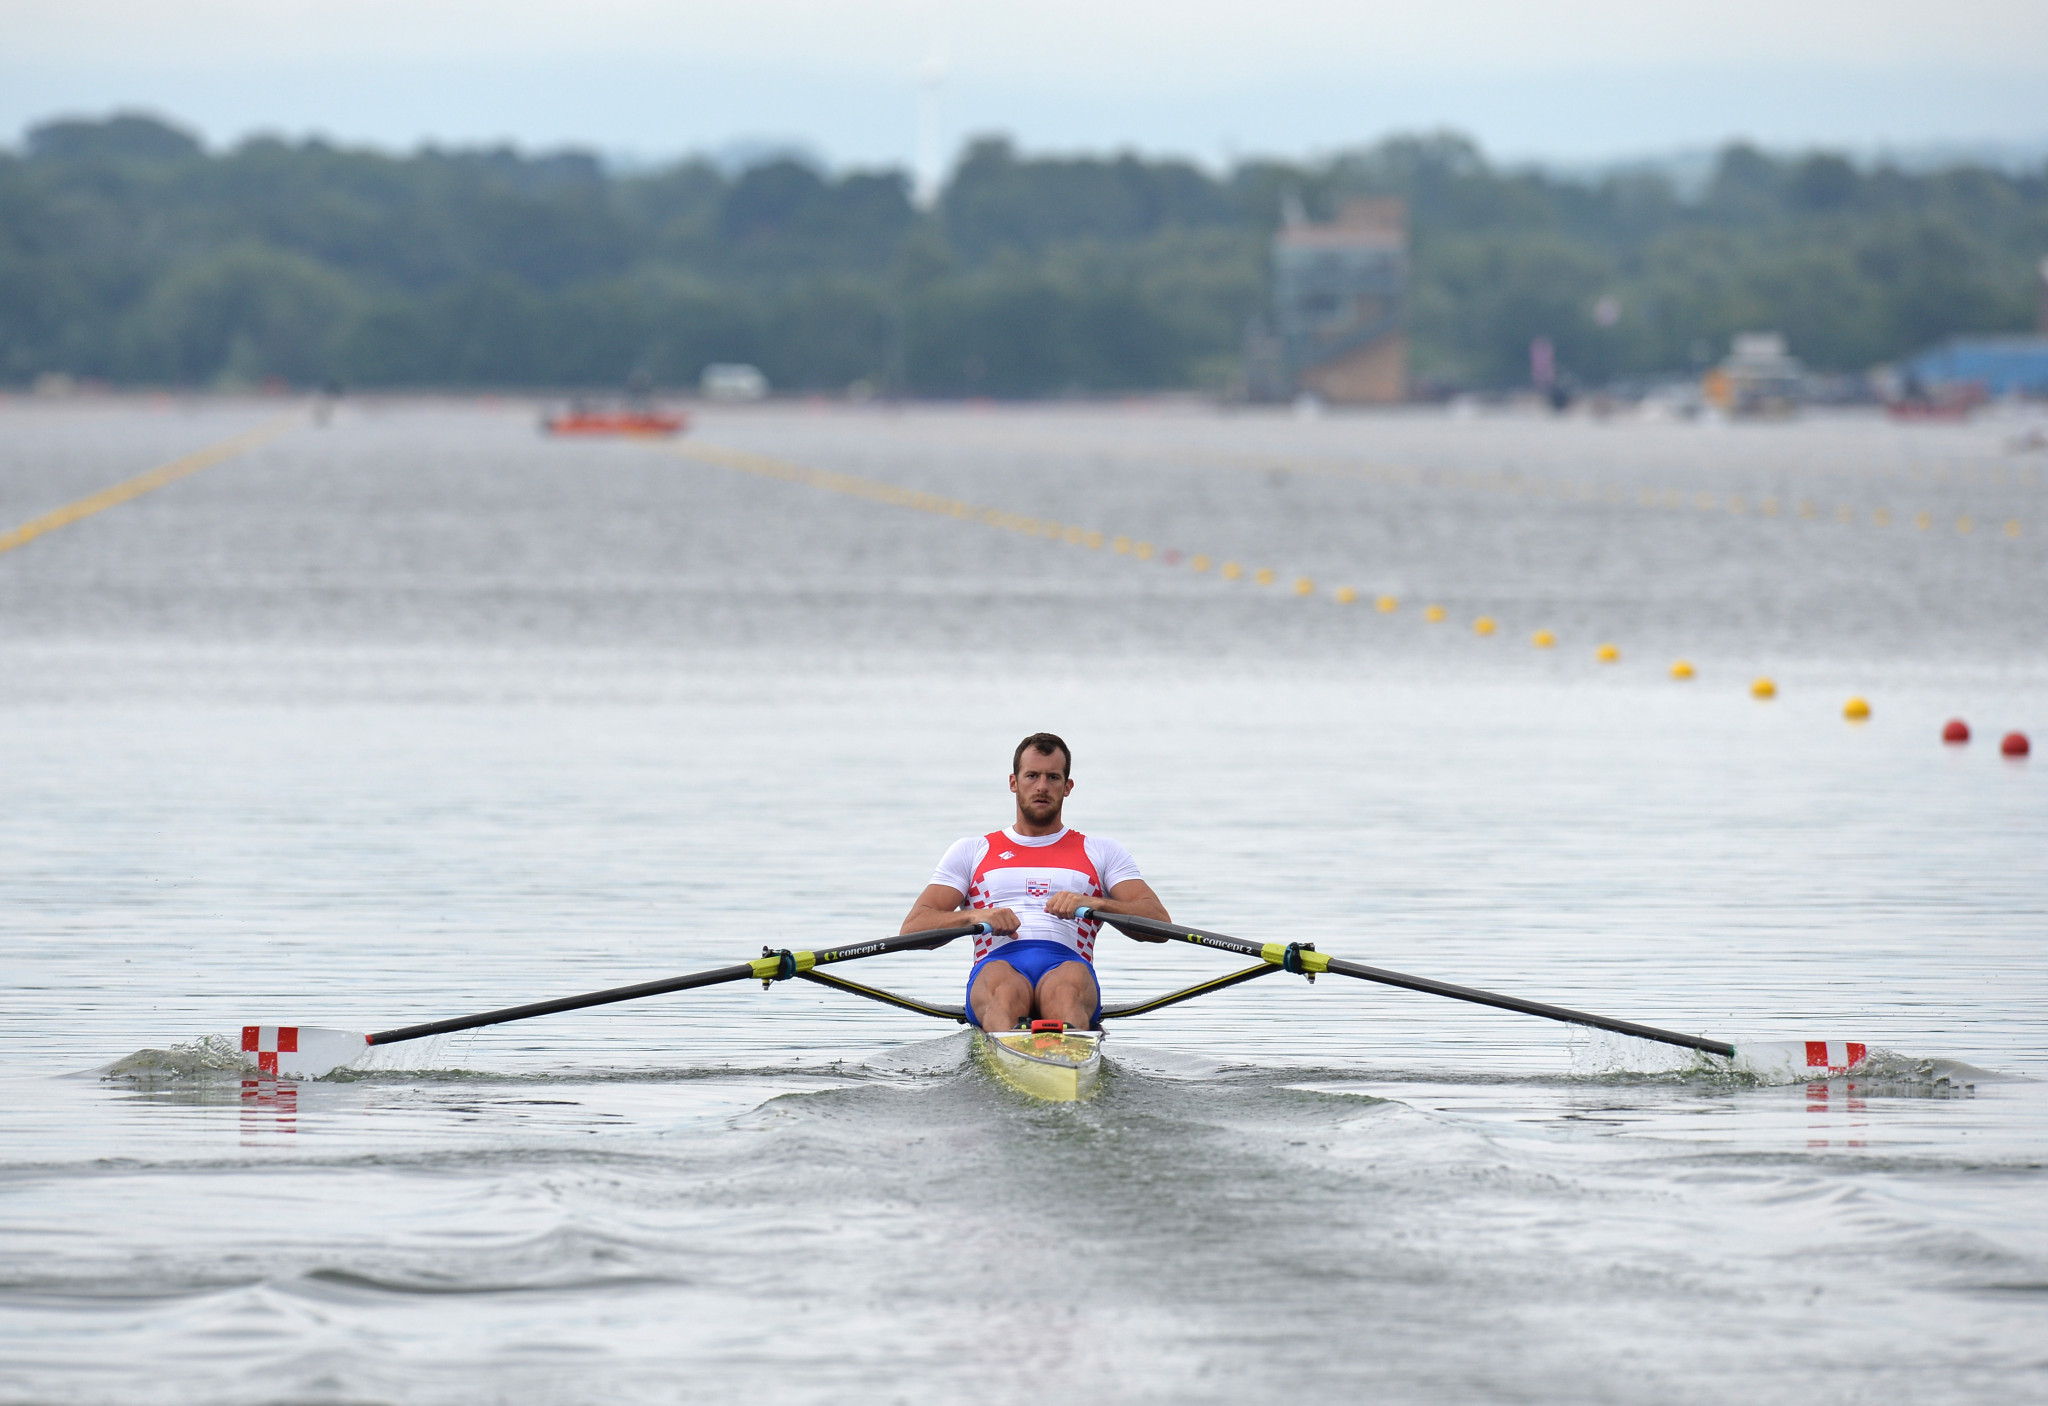 Martin misses out on single sculls semi-finals at European Championships in Glasgow